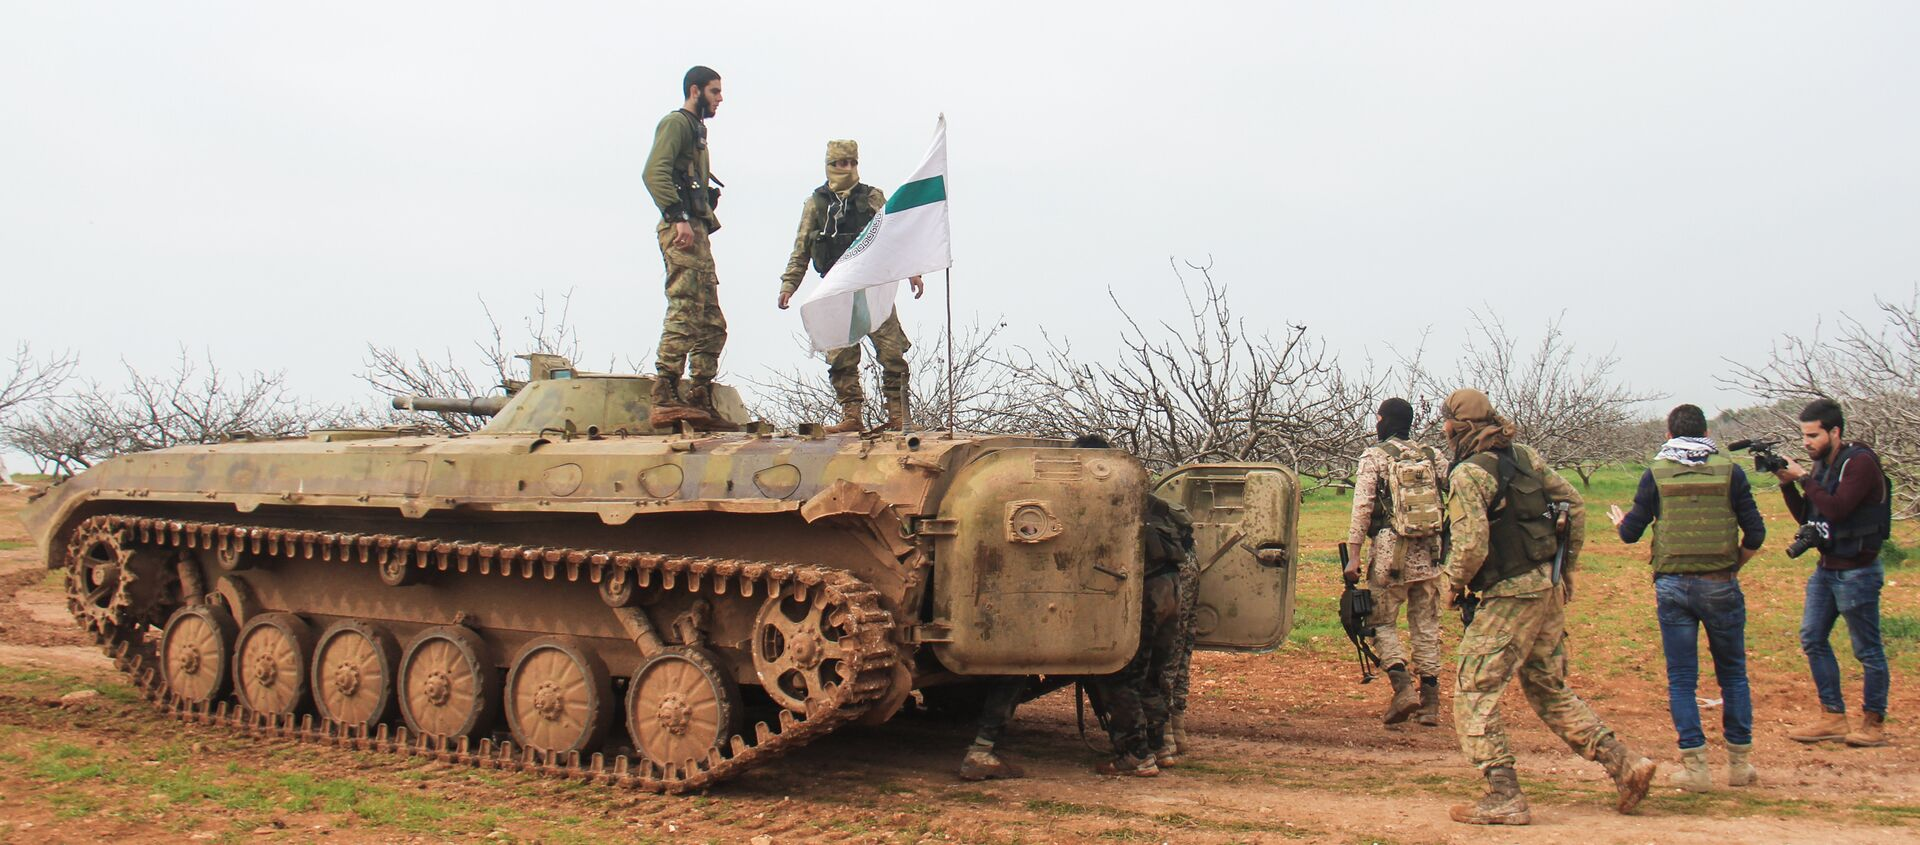 A picture taken on March 22, 2017 near the town of Maardes in the countryside of the central Syrian province of Hama, shows rebel fighters walking past an armoured vehicle carrying the flag of the Tahrir al-Sham rebel alliance - Sputnik International, 1920, 04.04.2021